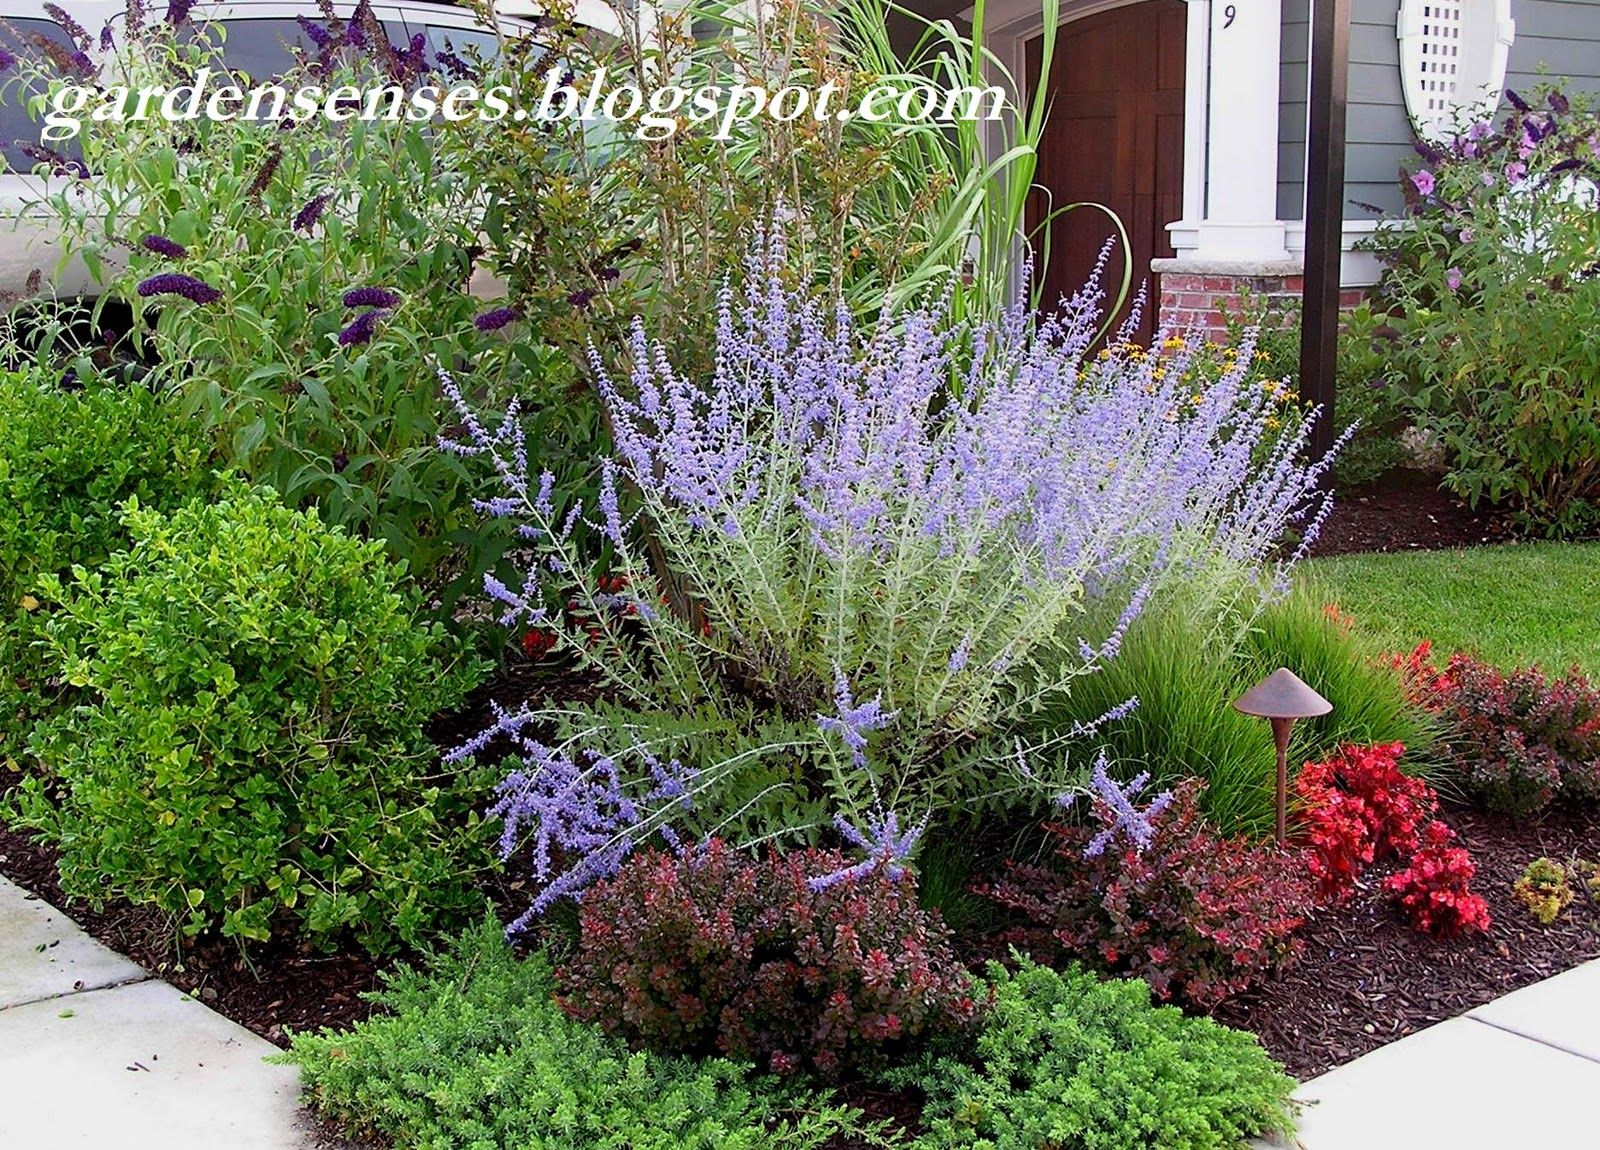 Dwarf barberry bushes easy care garden with russian sage for Easy maintenance perennials